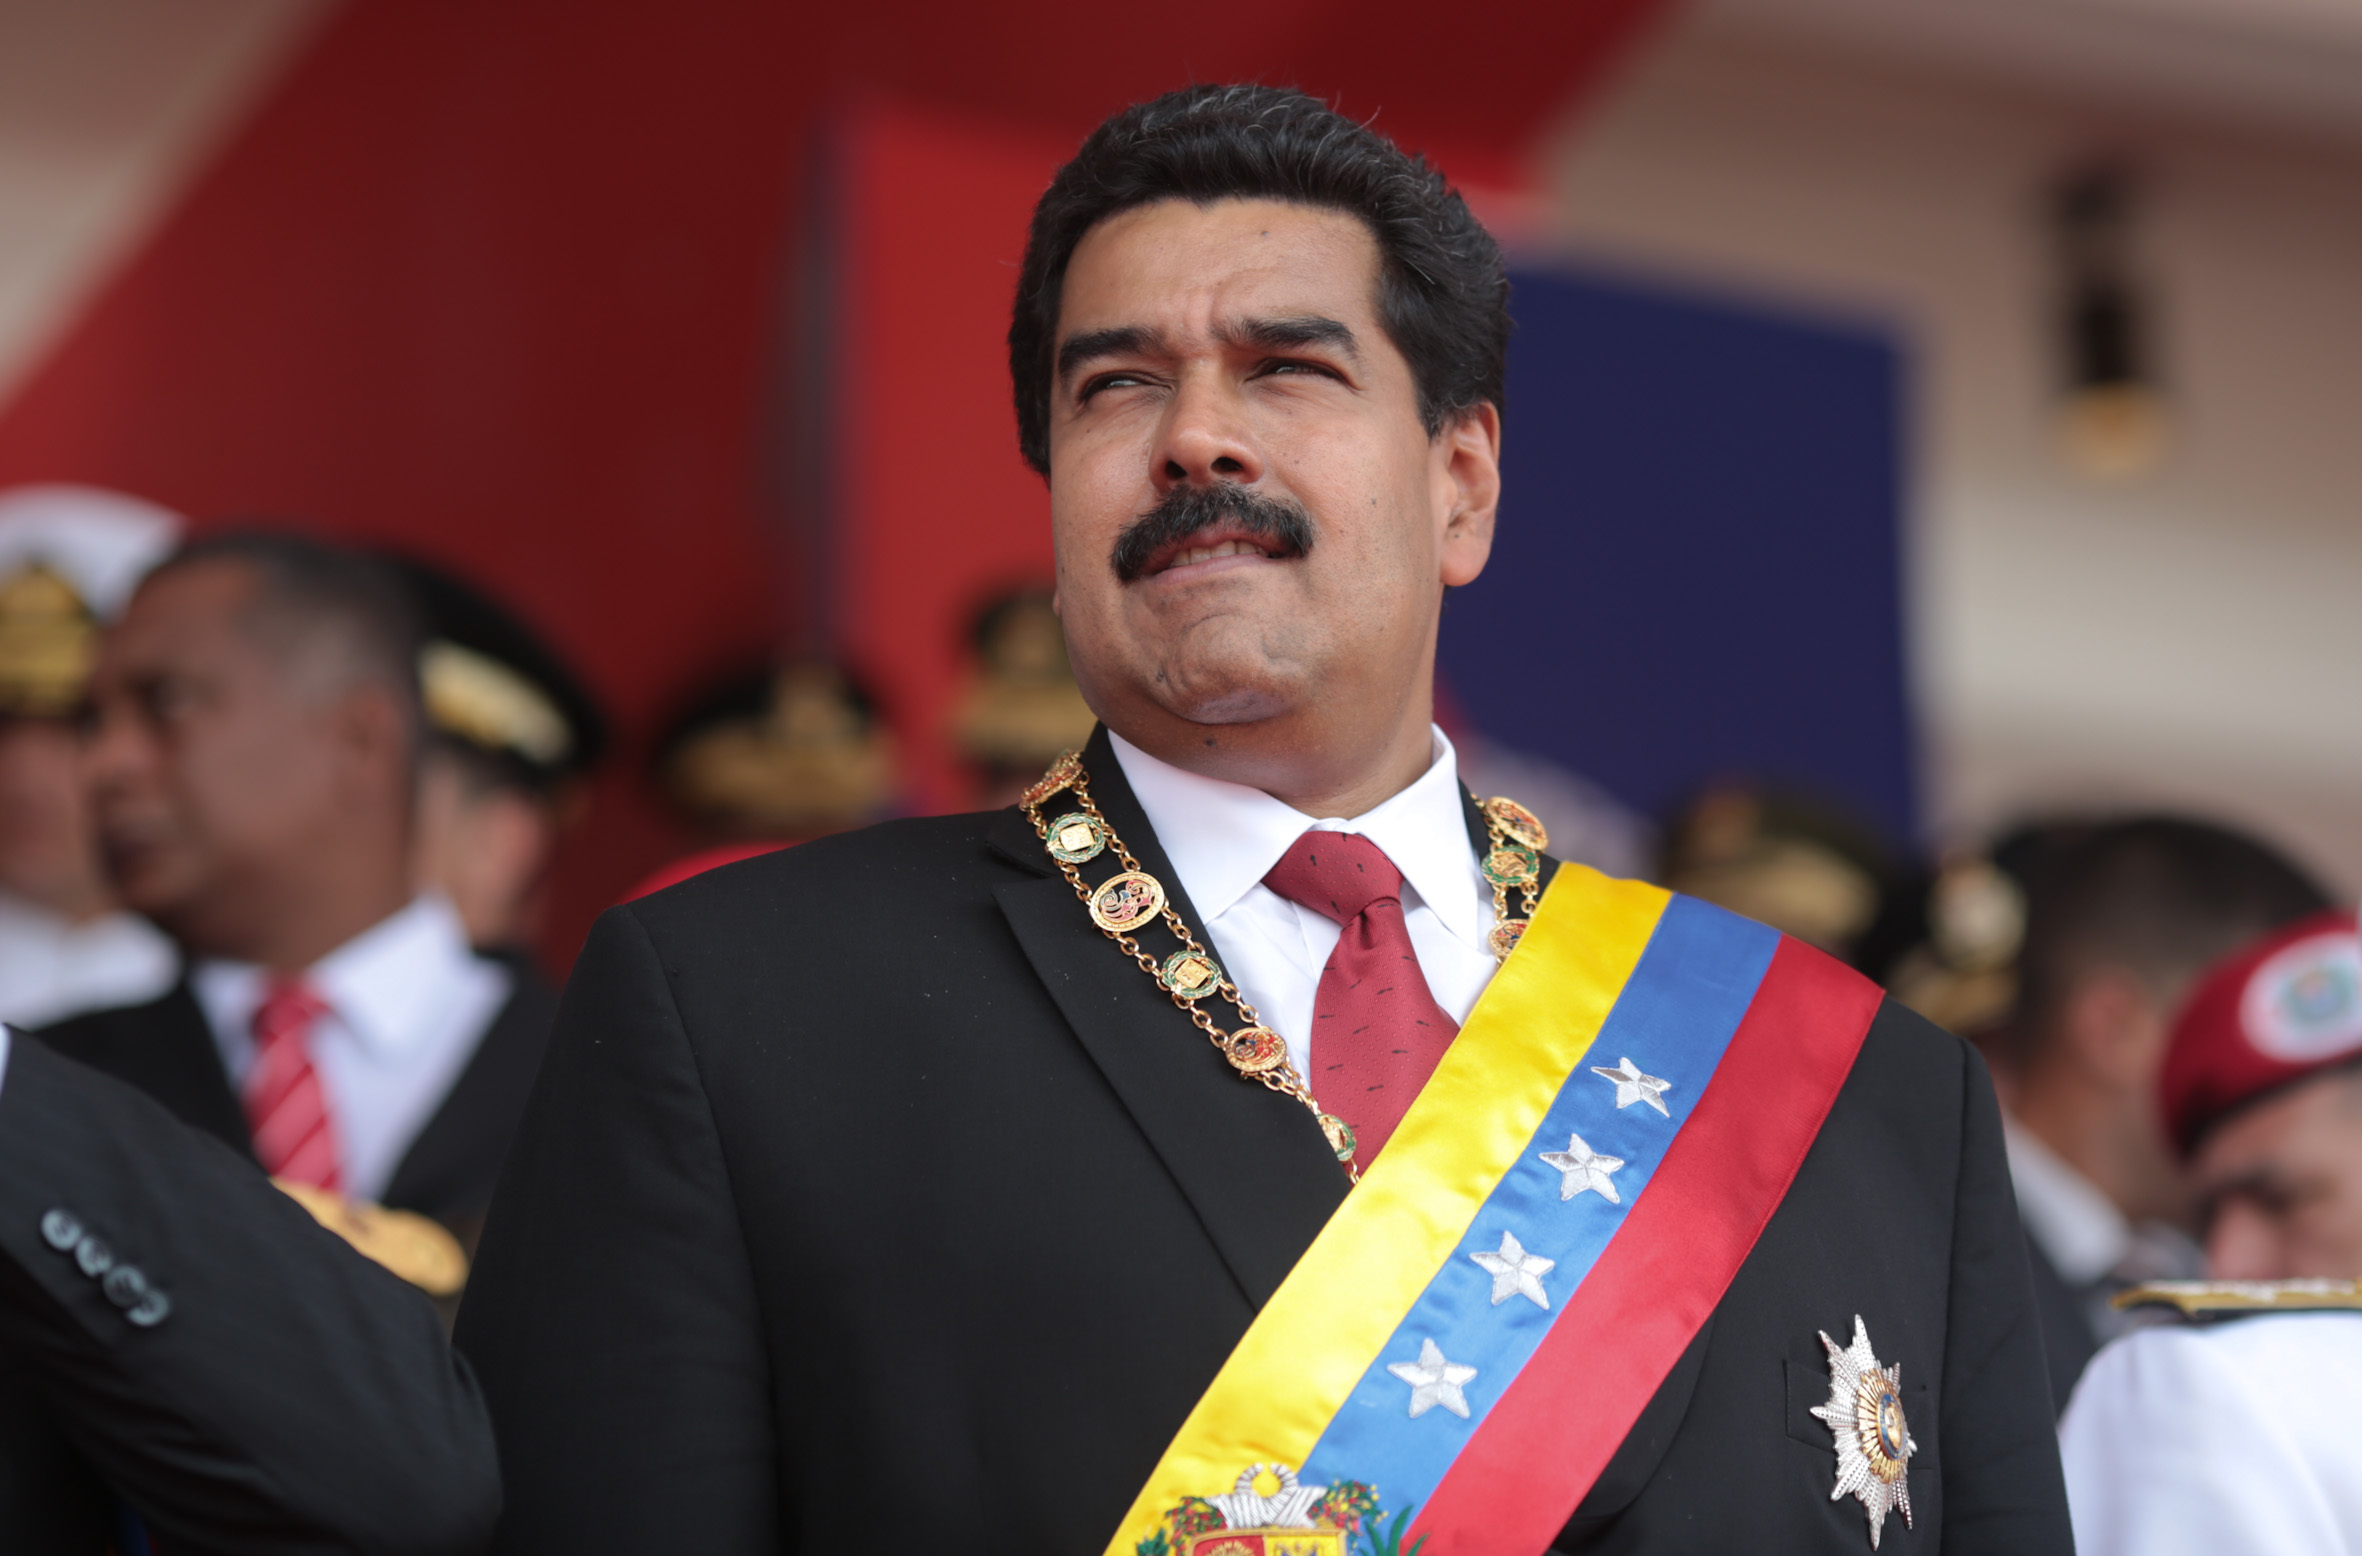 Supreme court takes over legislative power from National Assembly in Venezuela